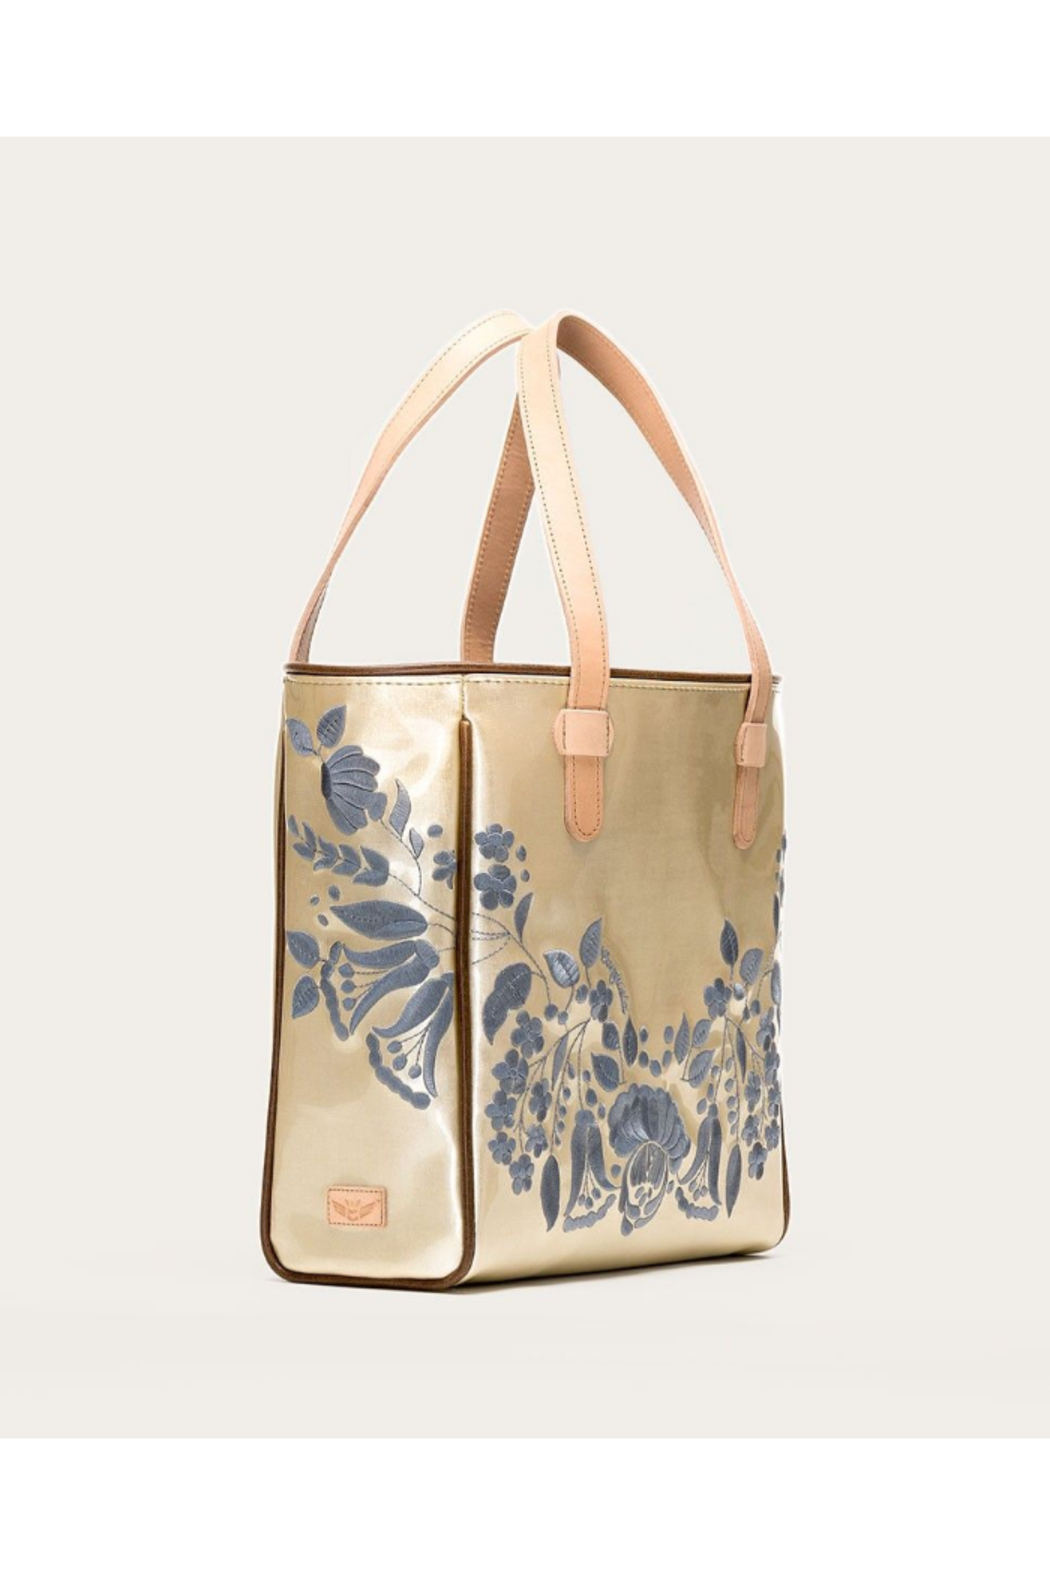 The Birds Nest CLASSIC VALENTINA TOTE-CHAMPAGNE - Front Full Image